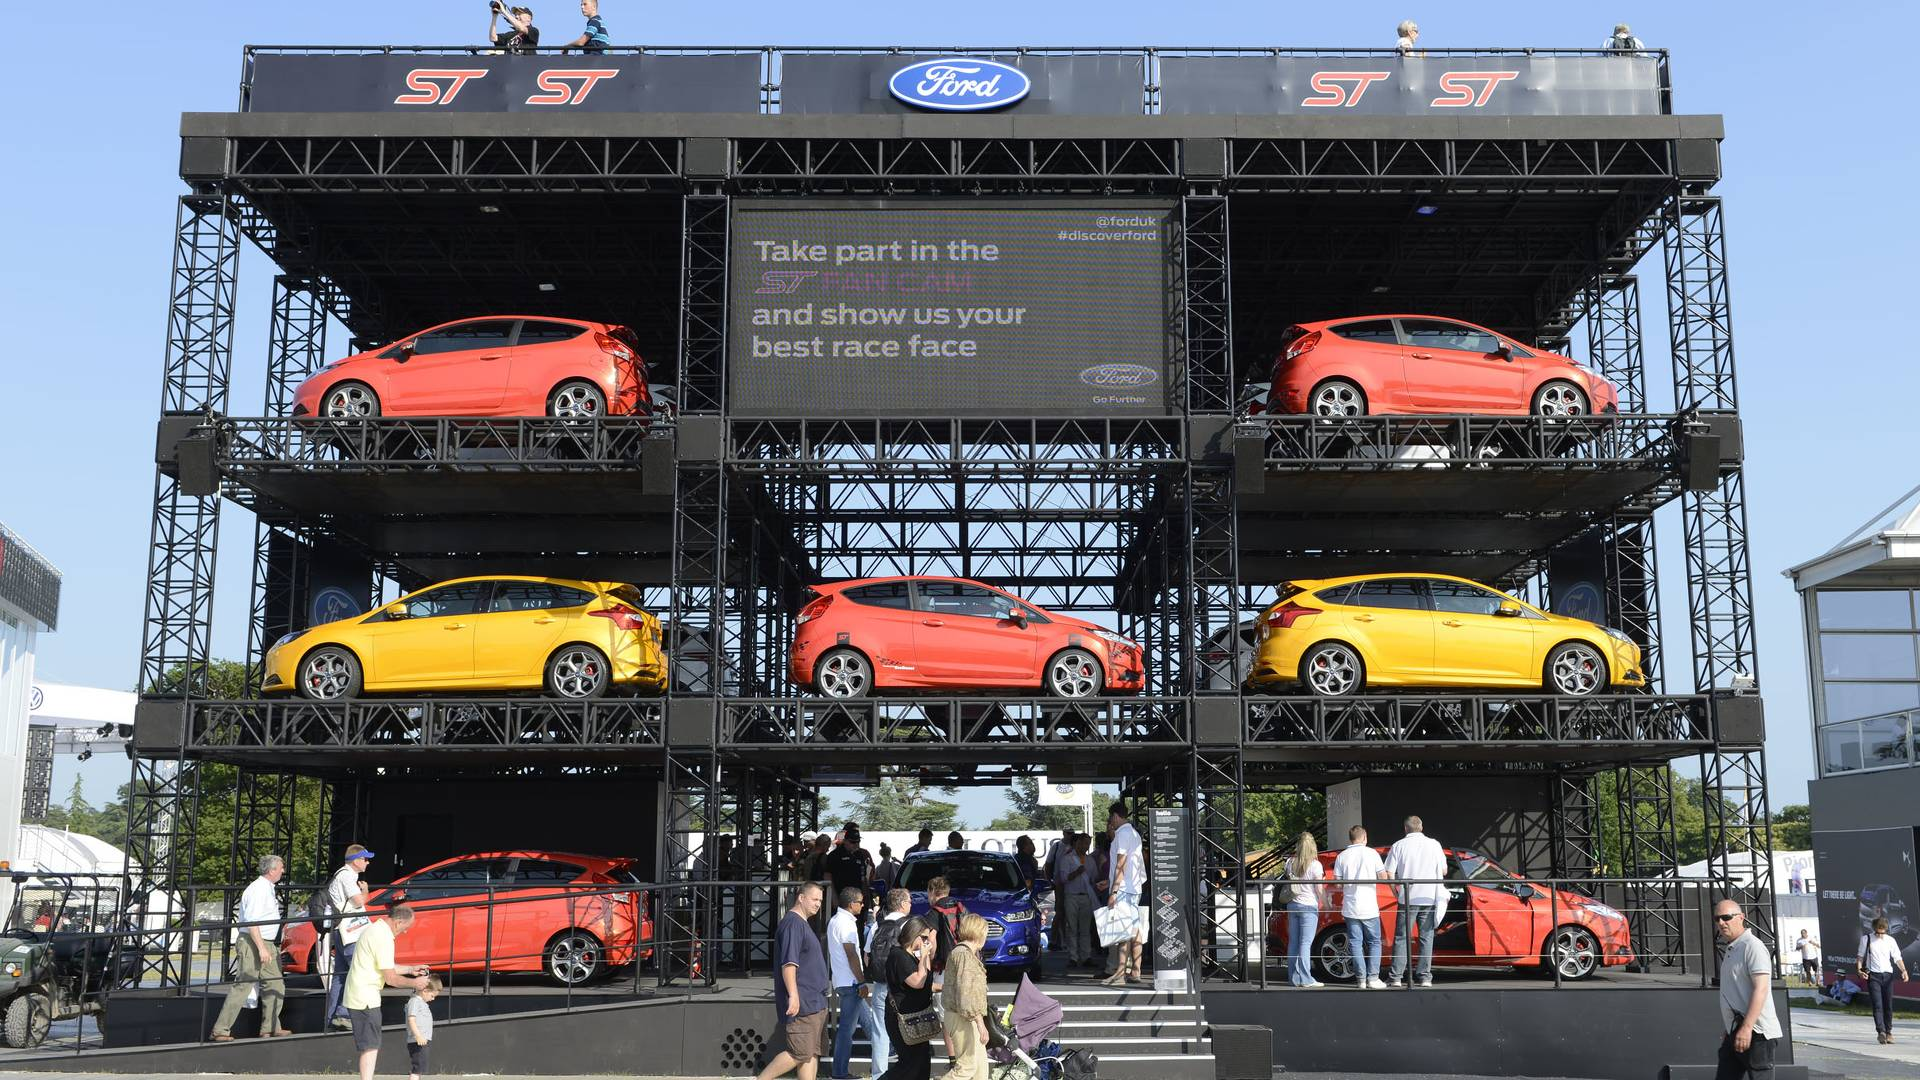 festival of motoring comes to istanbul with support of goodwood